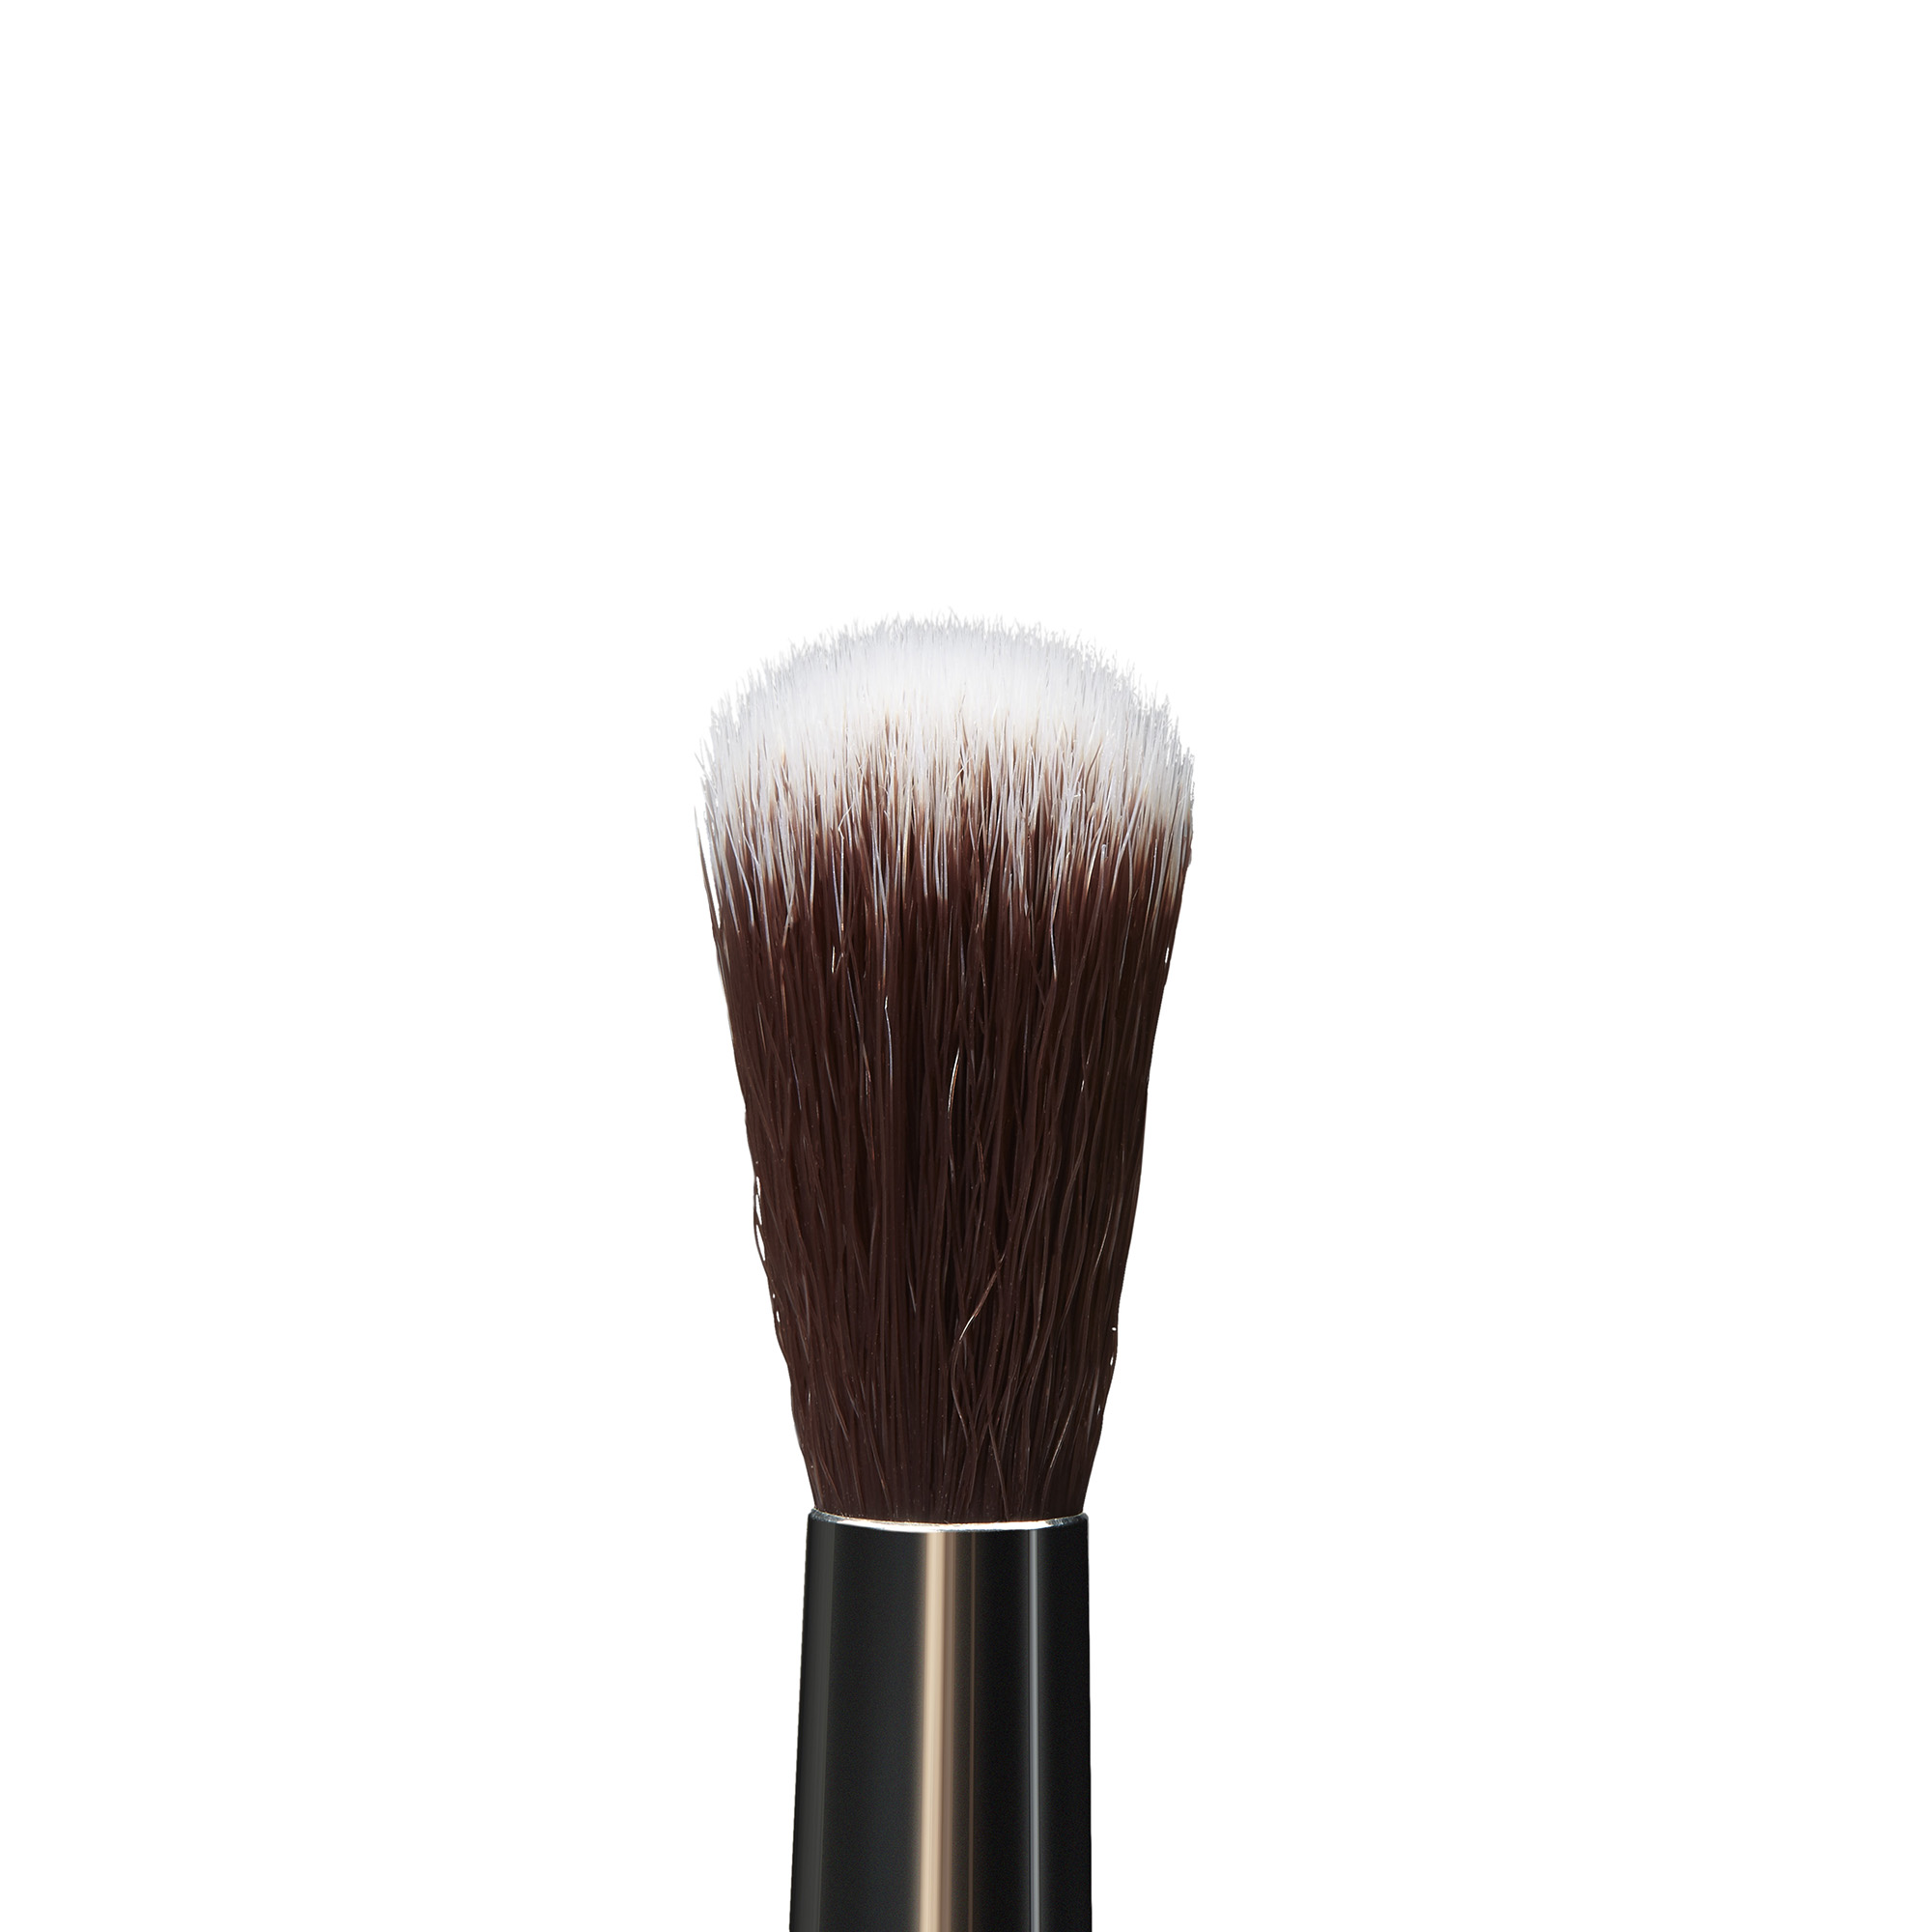 Pro Brush- A26 Crease Blending Brush